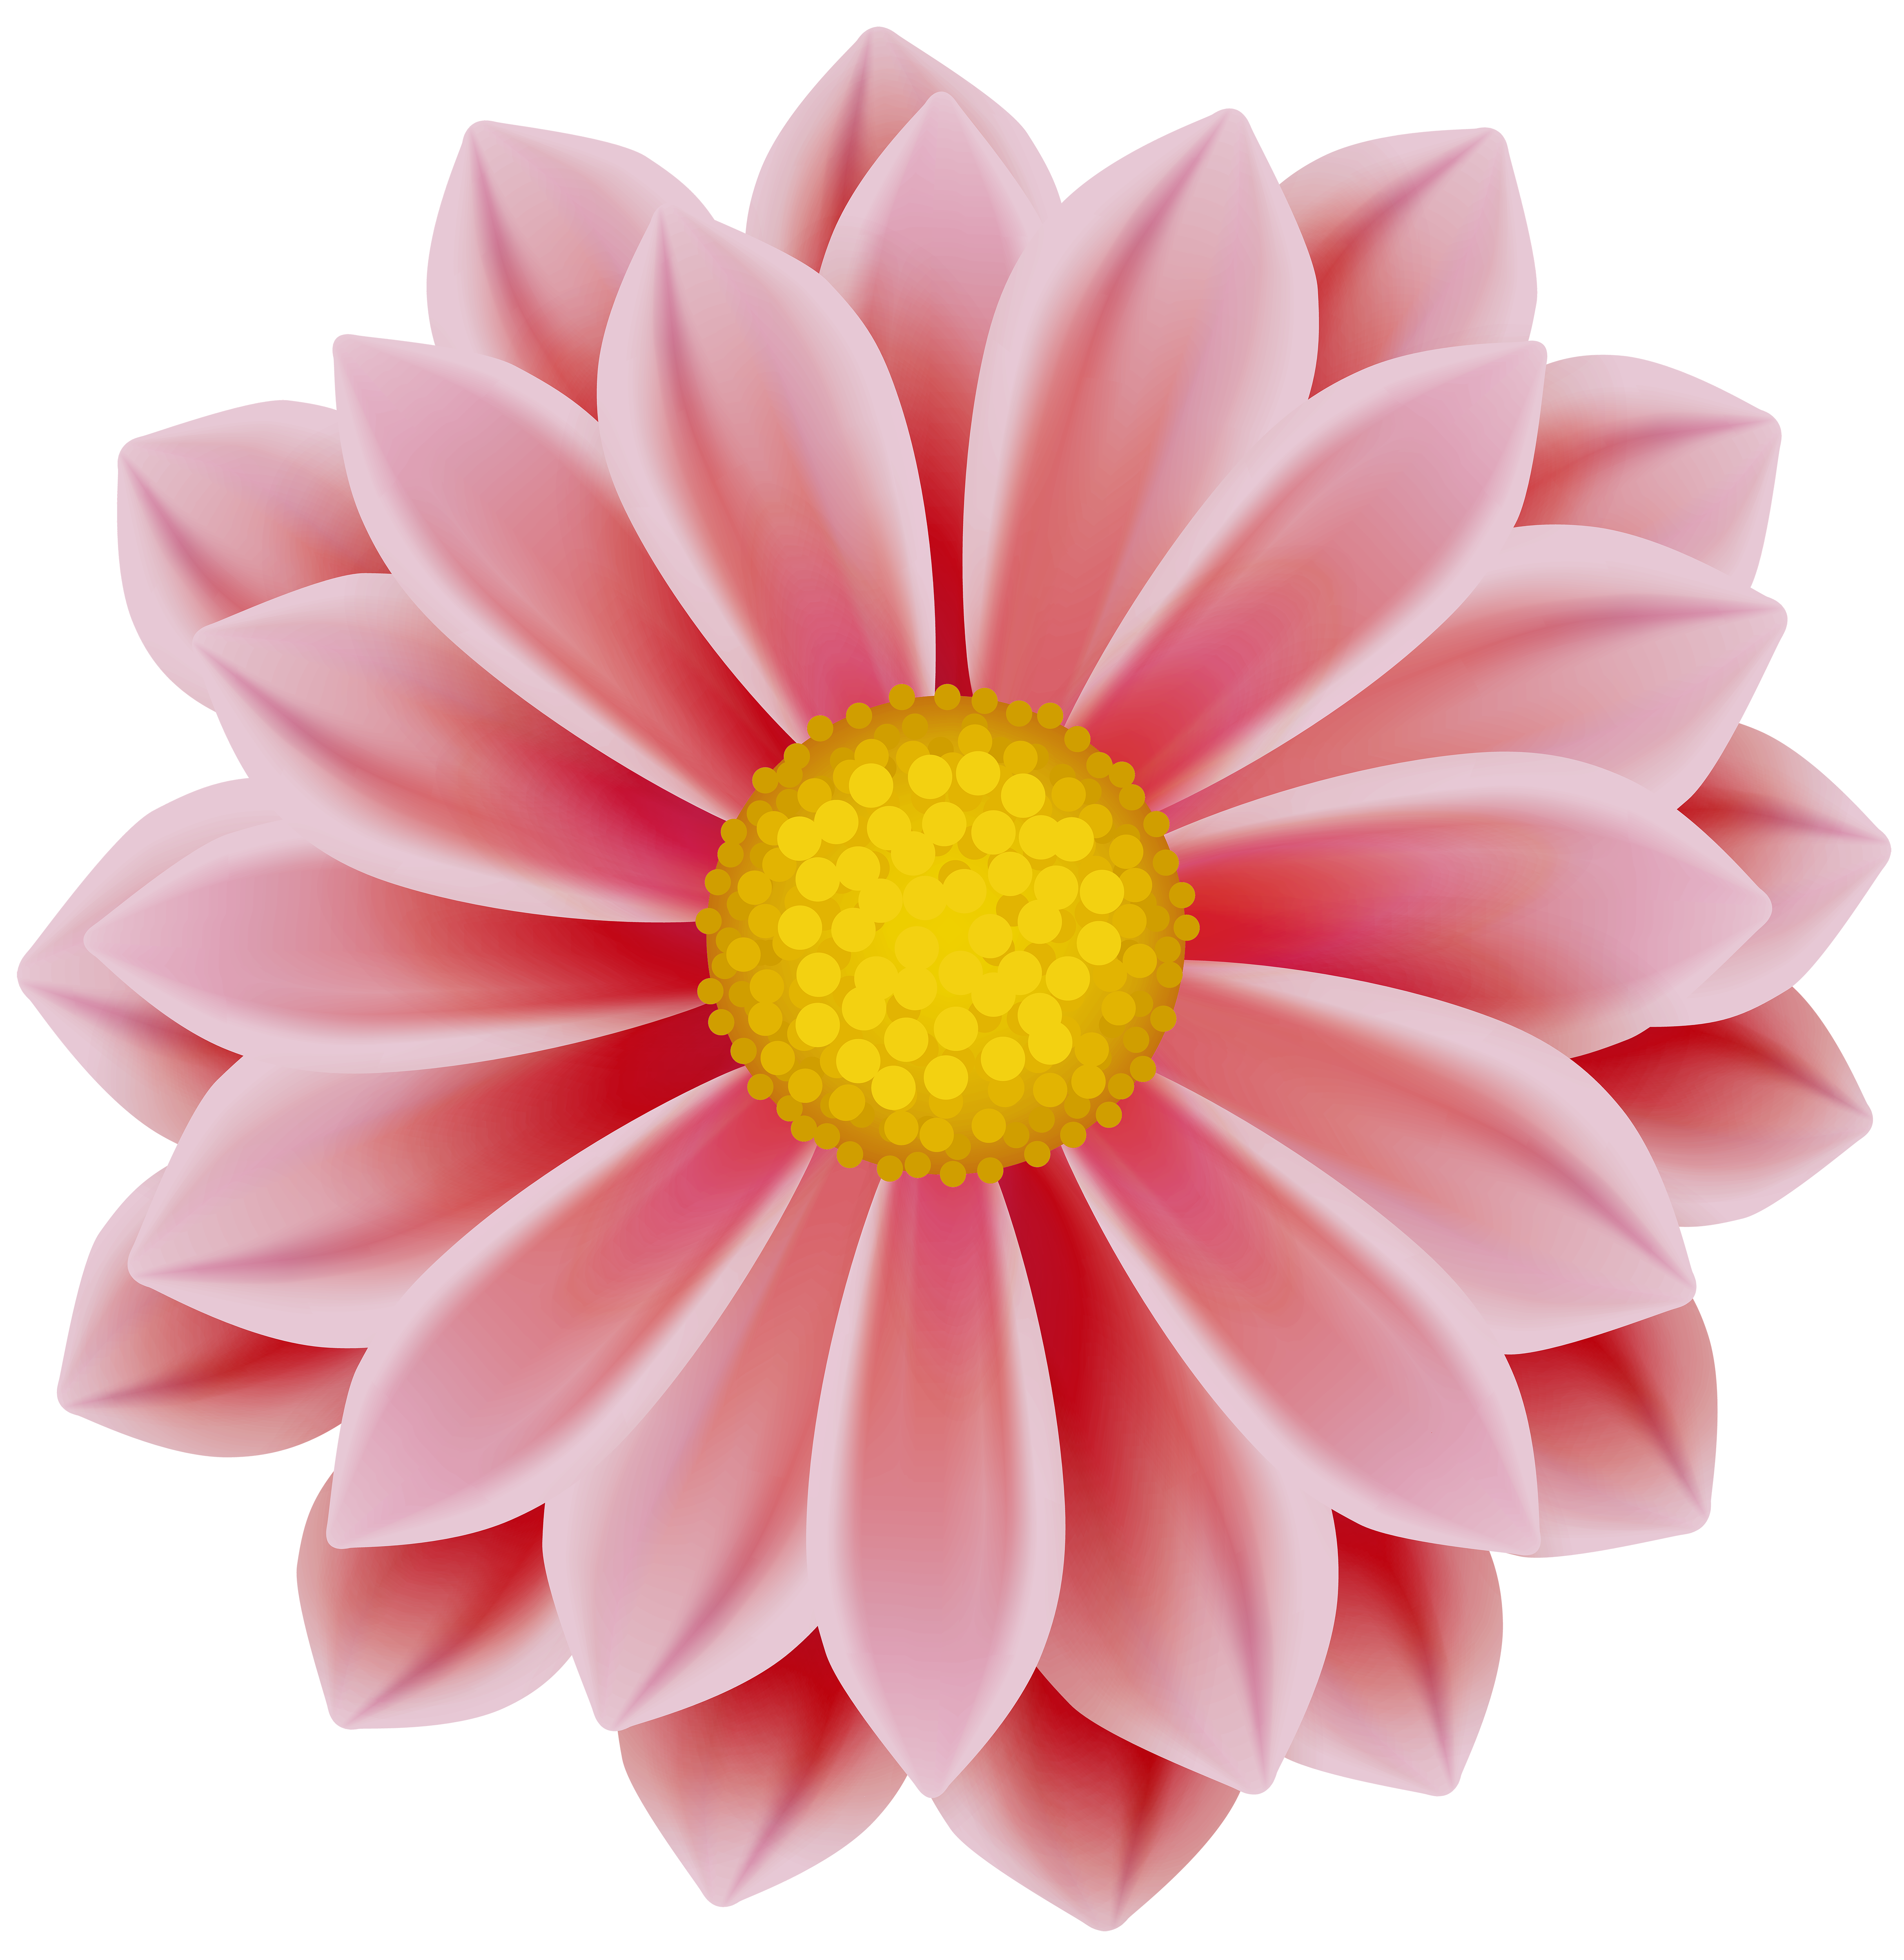 Dahlia flower clipart clipart Flower PNG Clip Art | Gallery Yopriceville - High-Quality Images ... clipart